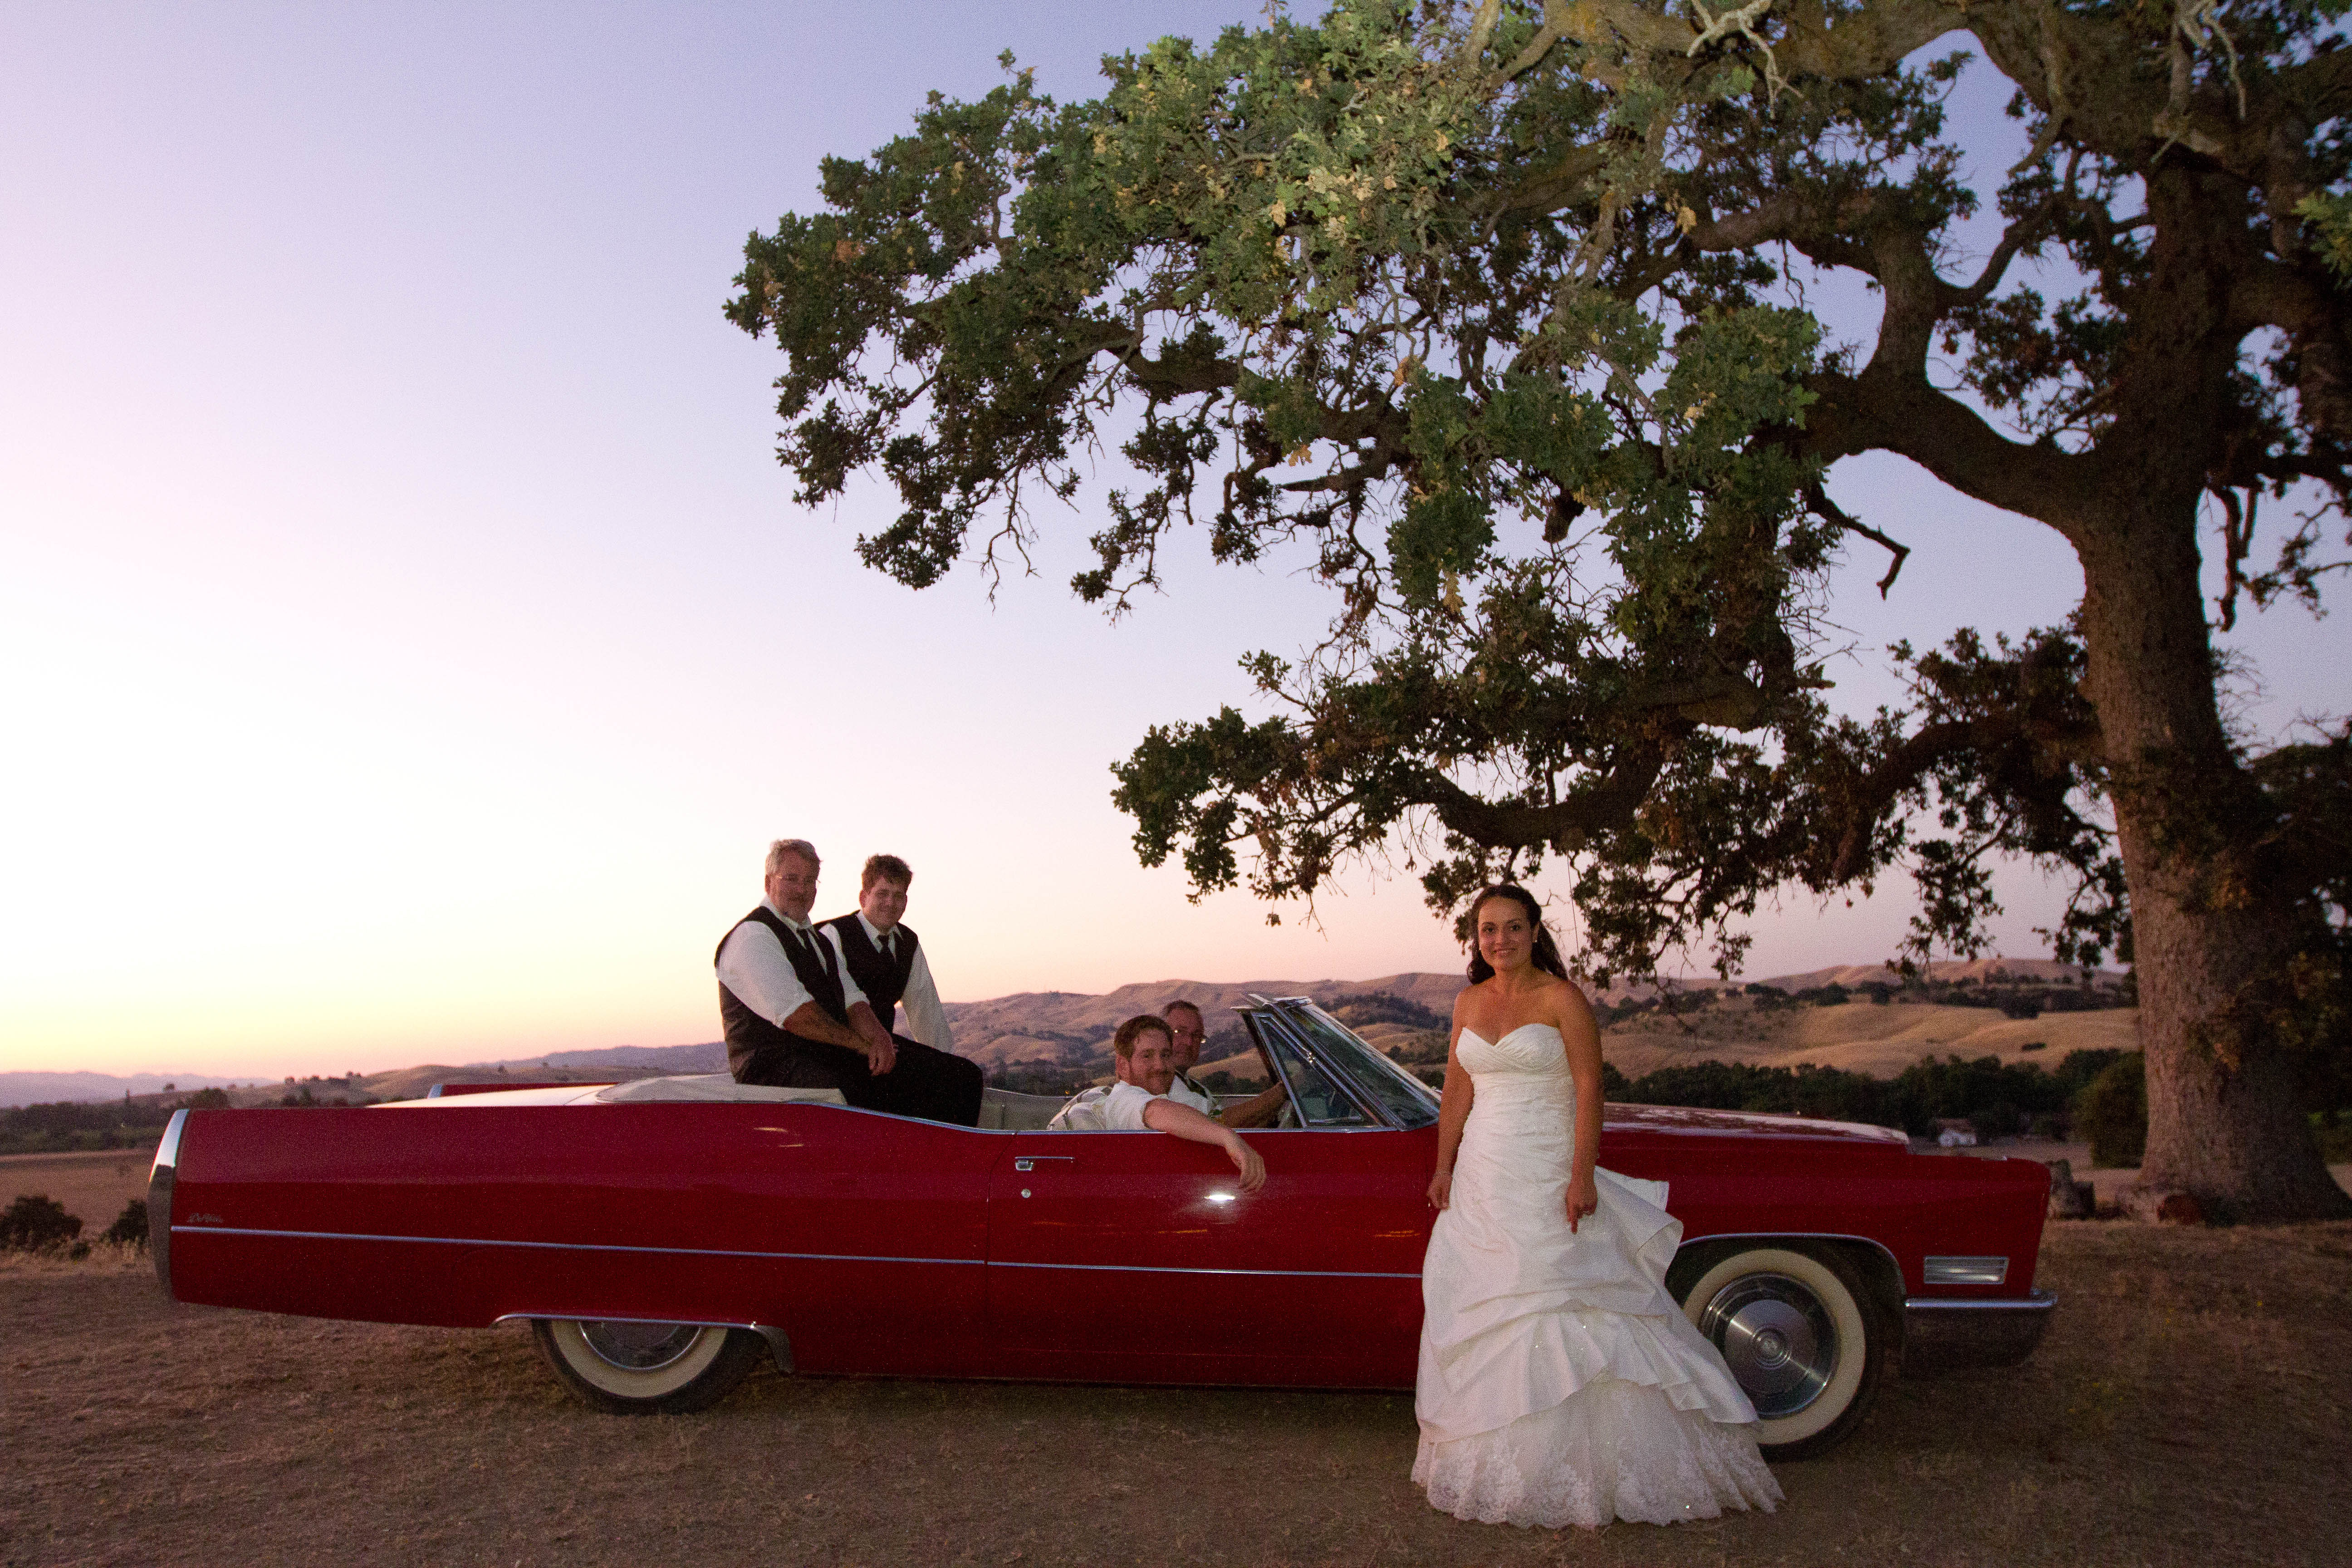 a memorable wedding Article: 25 ideas on how to personalize your day will make it the event that will be talked about for years to come.